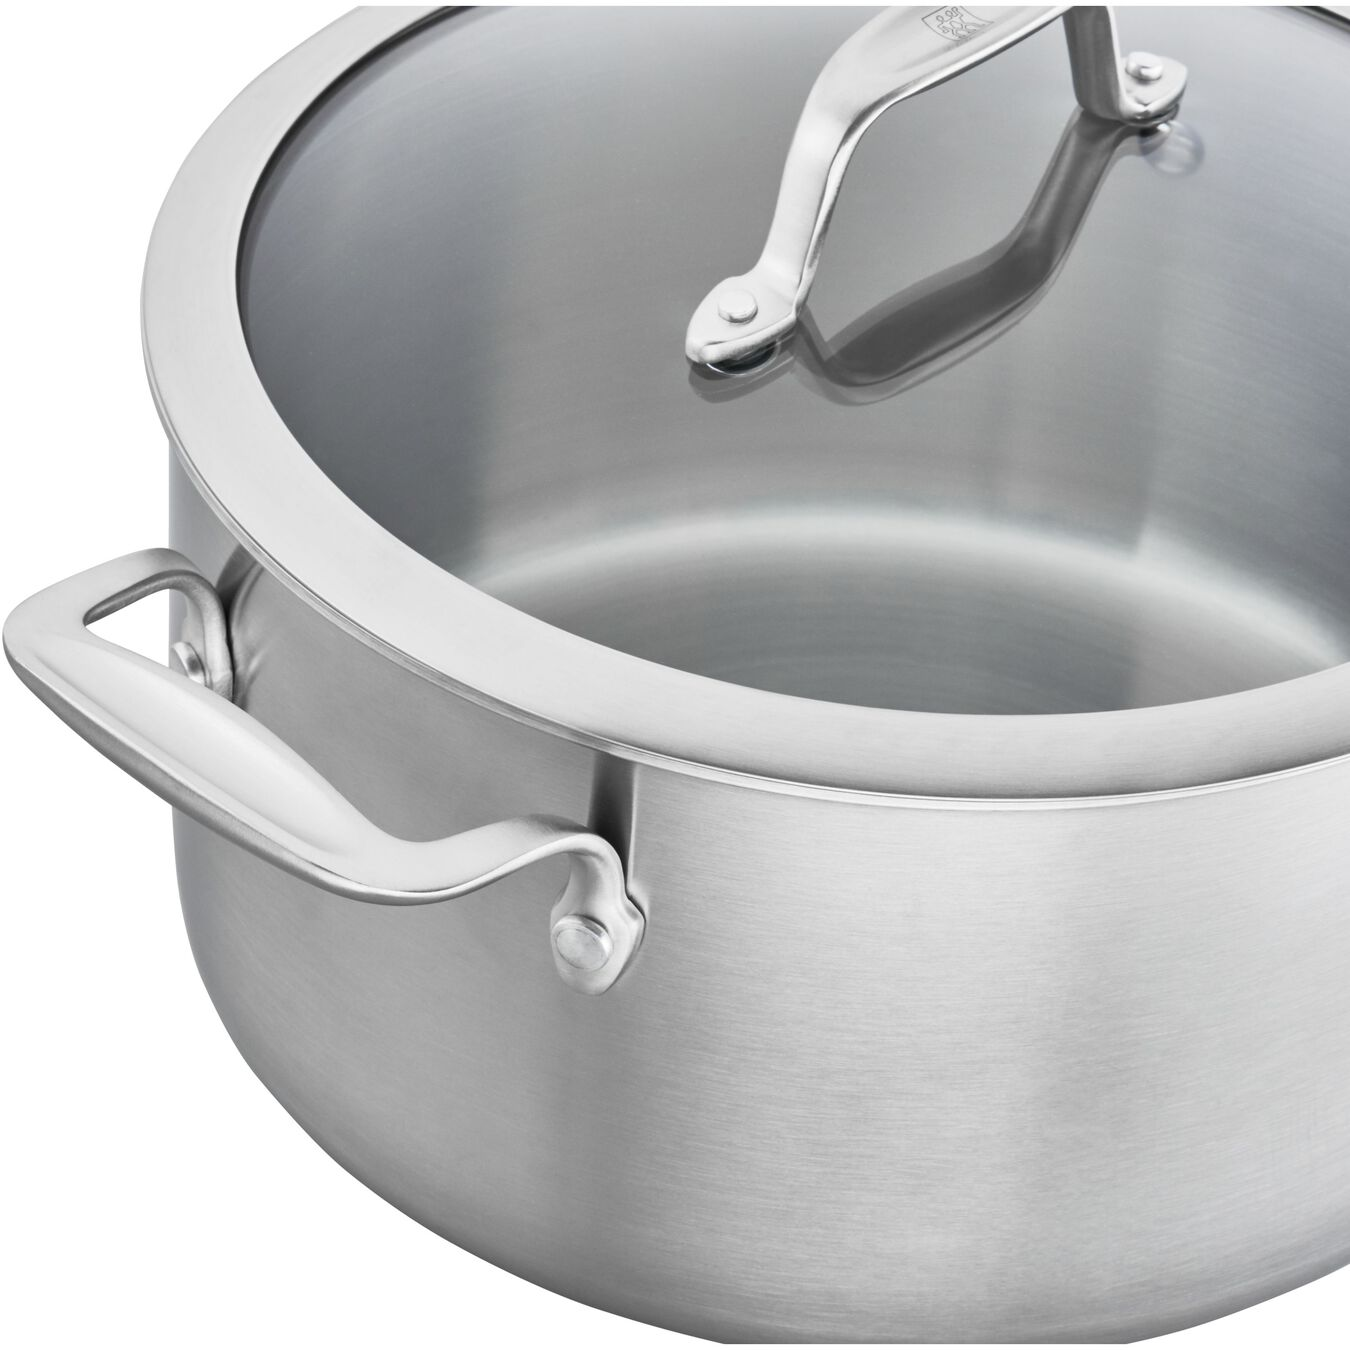 Ceramic, 10-pc, stainless steel, Cookware Set,,large 3